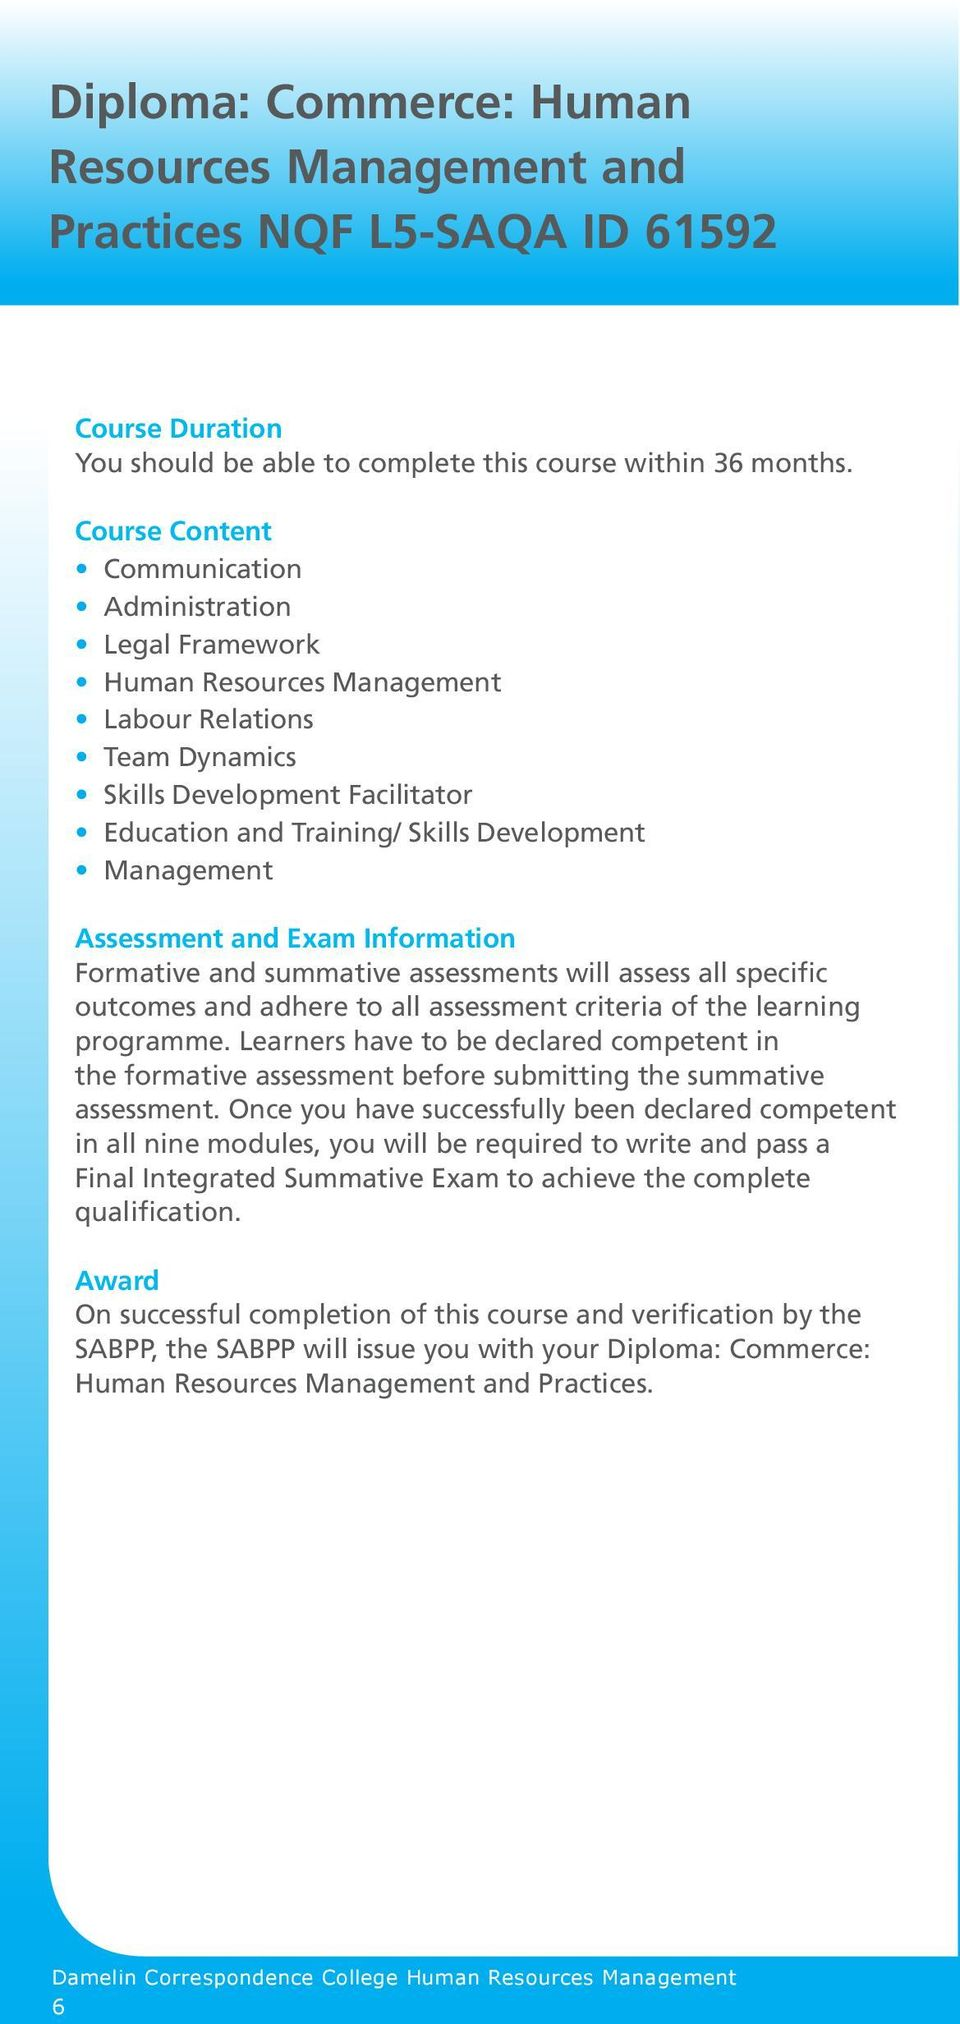 Management Assessment and Exam Information Formative and summative assessments will assess all specific outcomes and adhere to all assessment criteria of the learning programme.